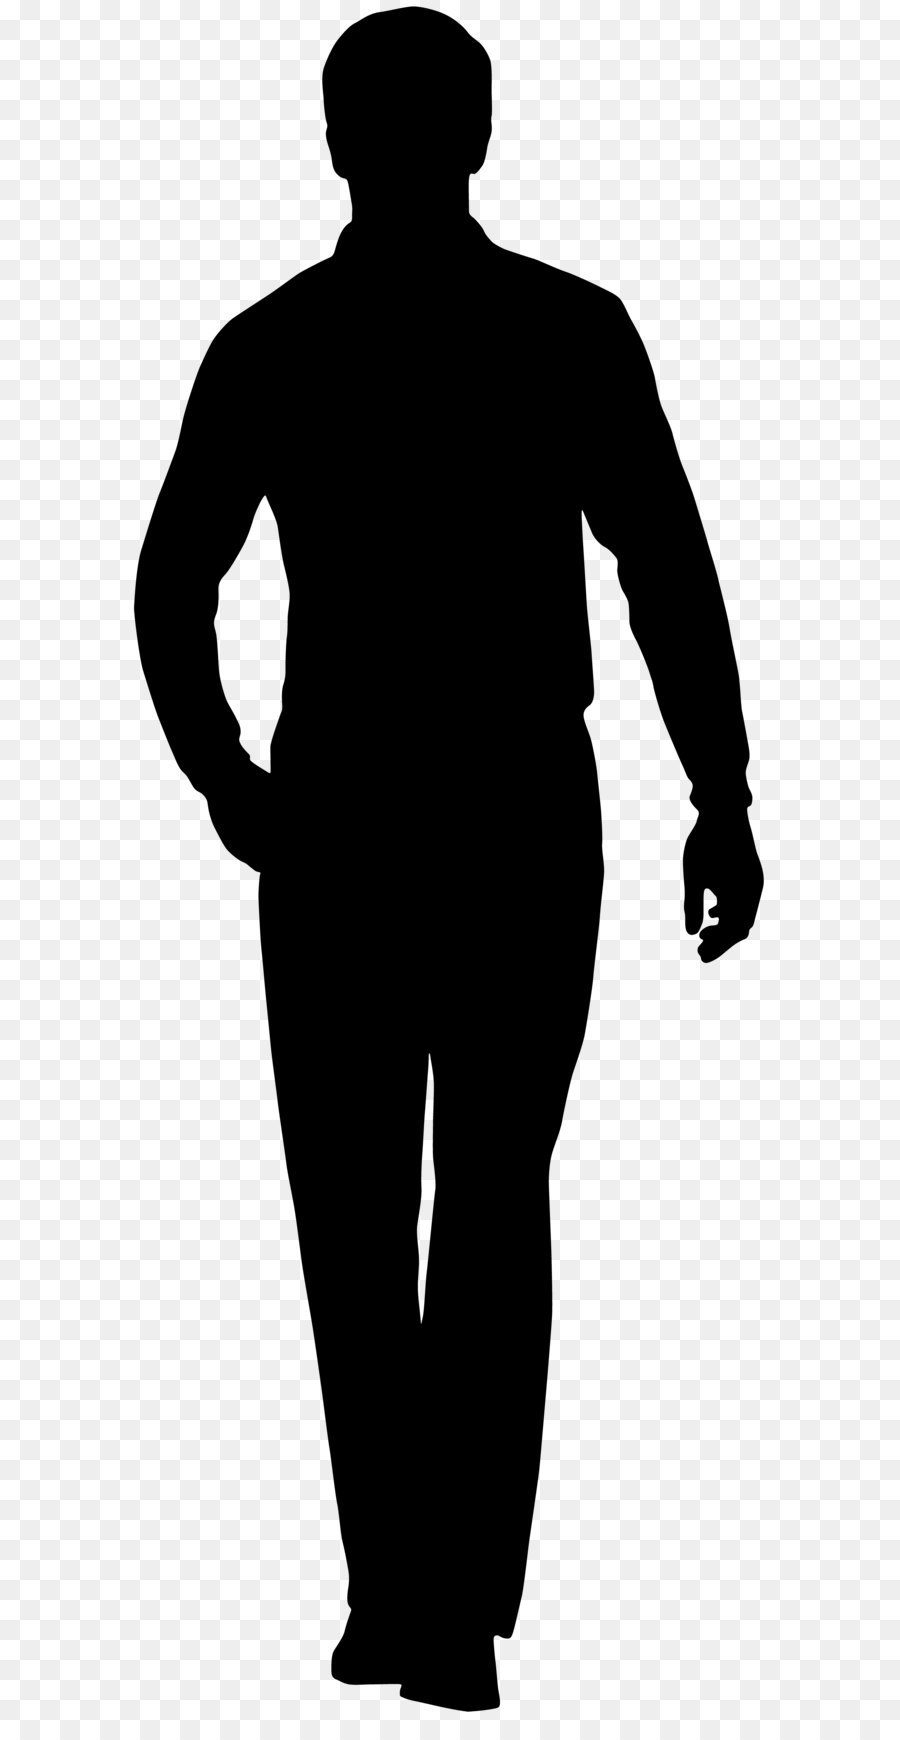 Free Man Silhouette Transparent Background, Download Free.